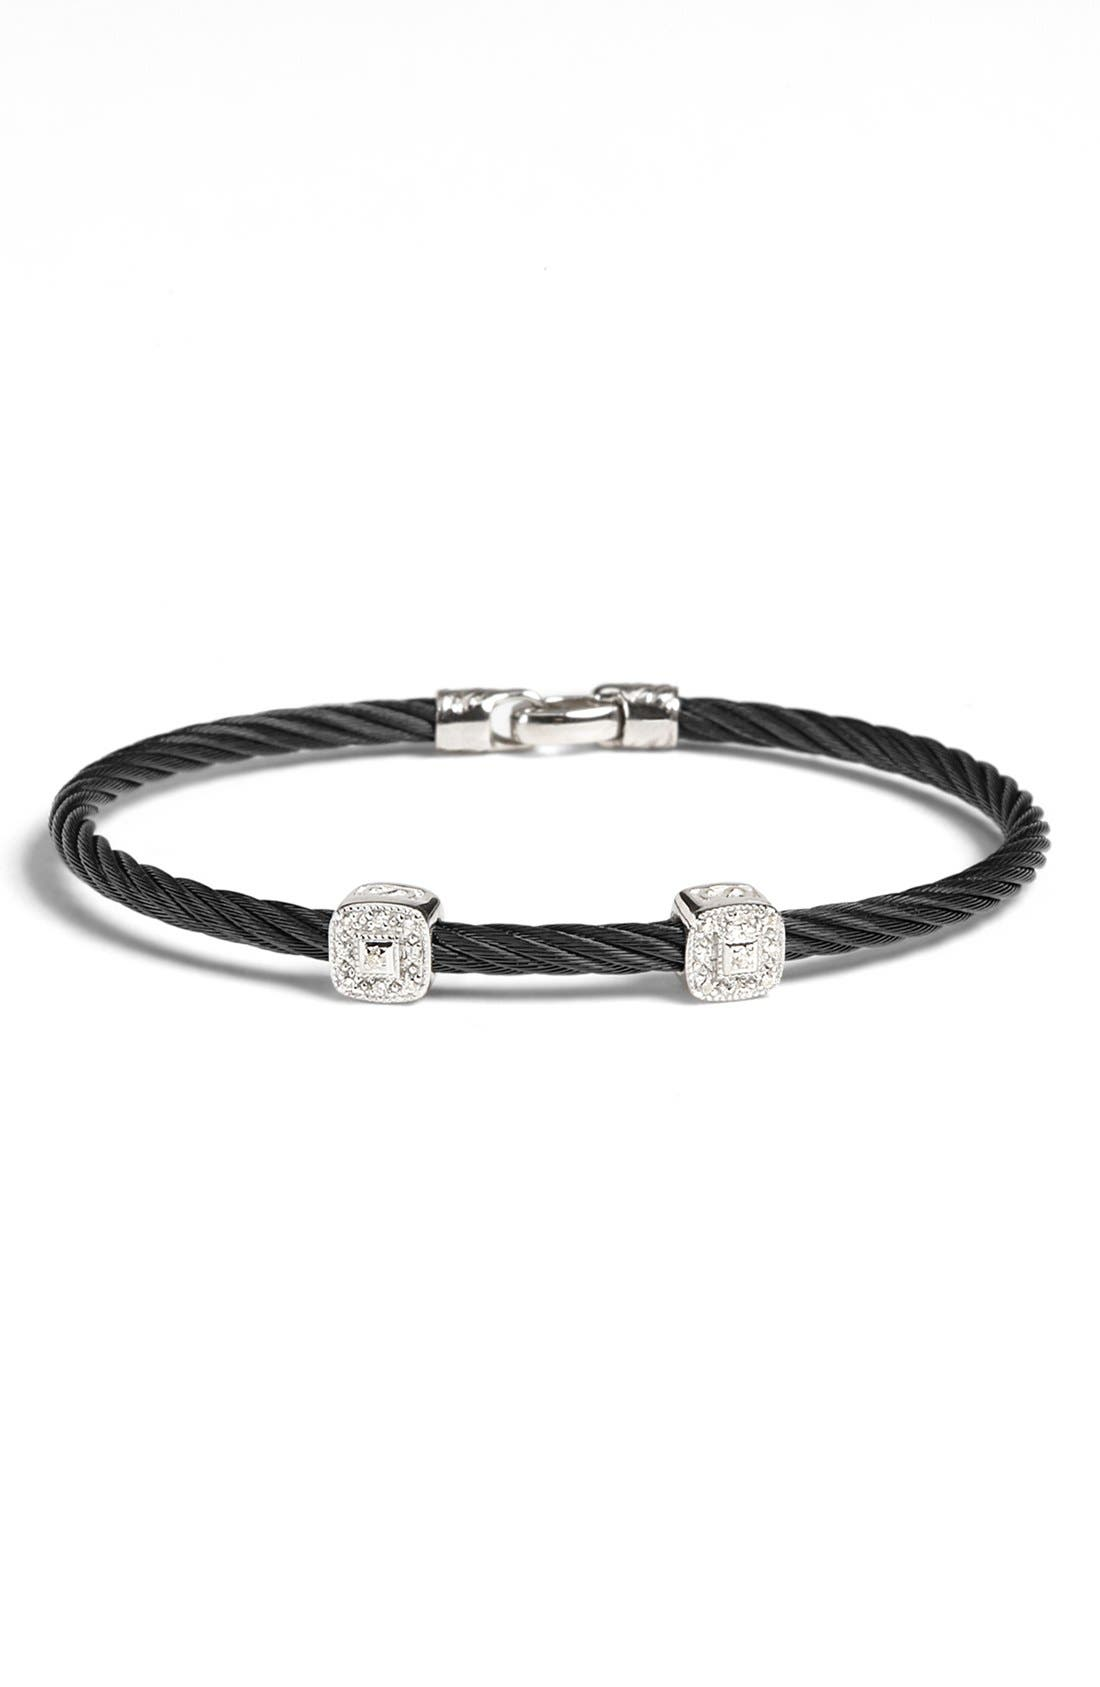 Main Image - ALOR® Square Diamond Station Stackable Bracelet